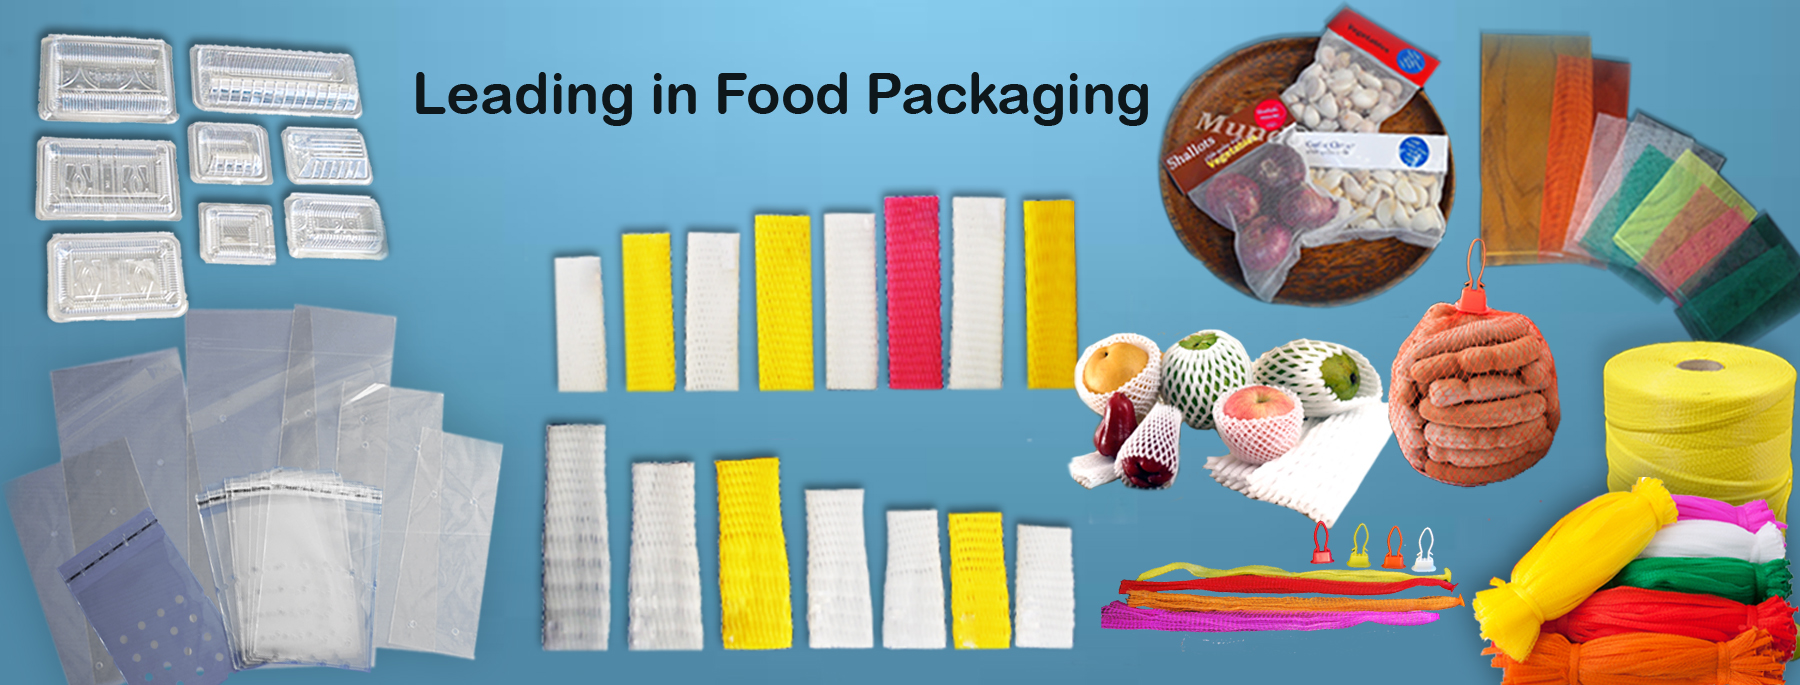 Leading in Food Packaging en